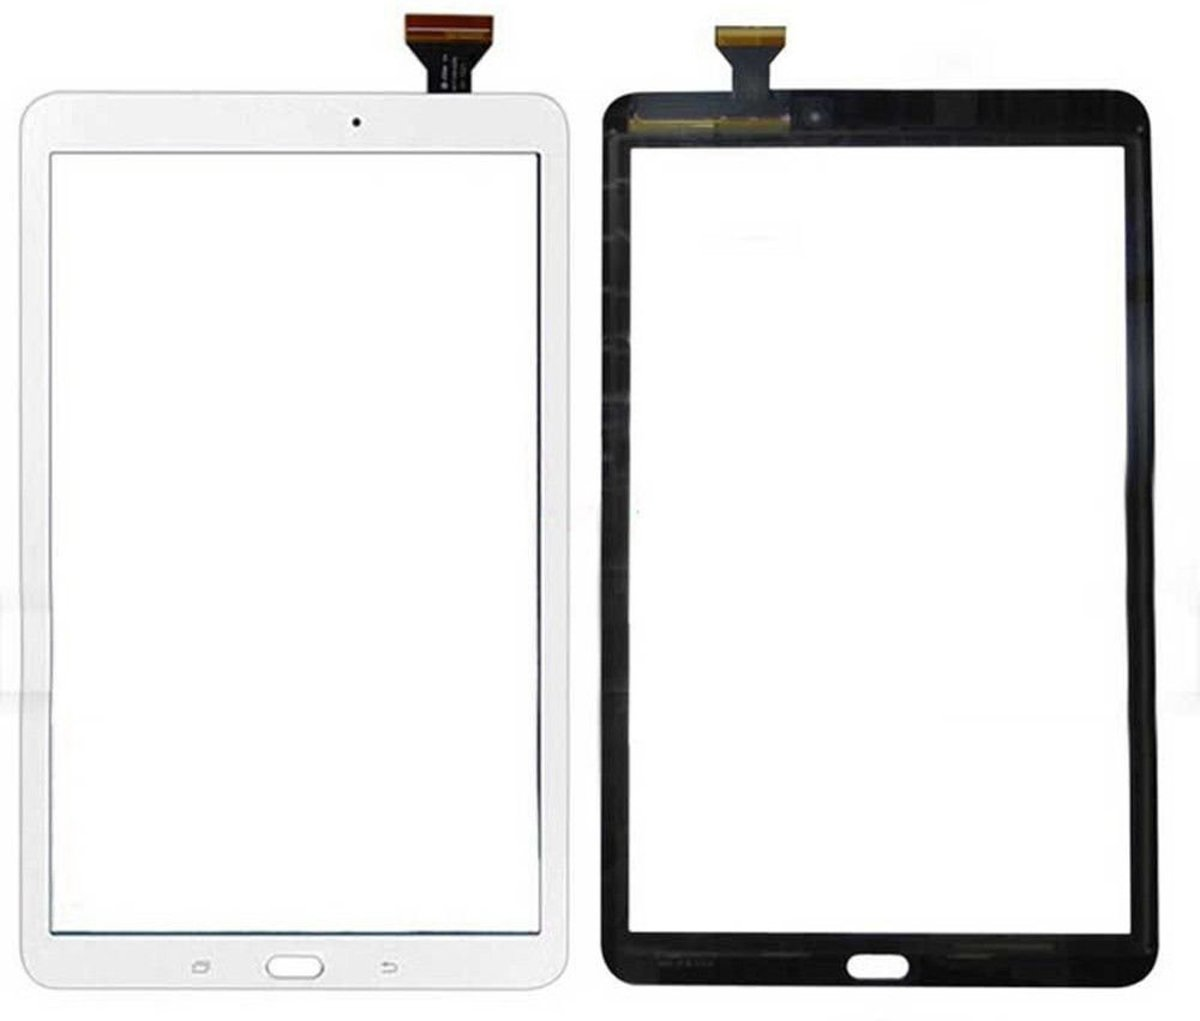 Touch Screen Glas Digitizer voor de Samsung Galaxy Tab A 10.1 T580 T585 2016 – Wit kopen